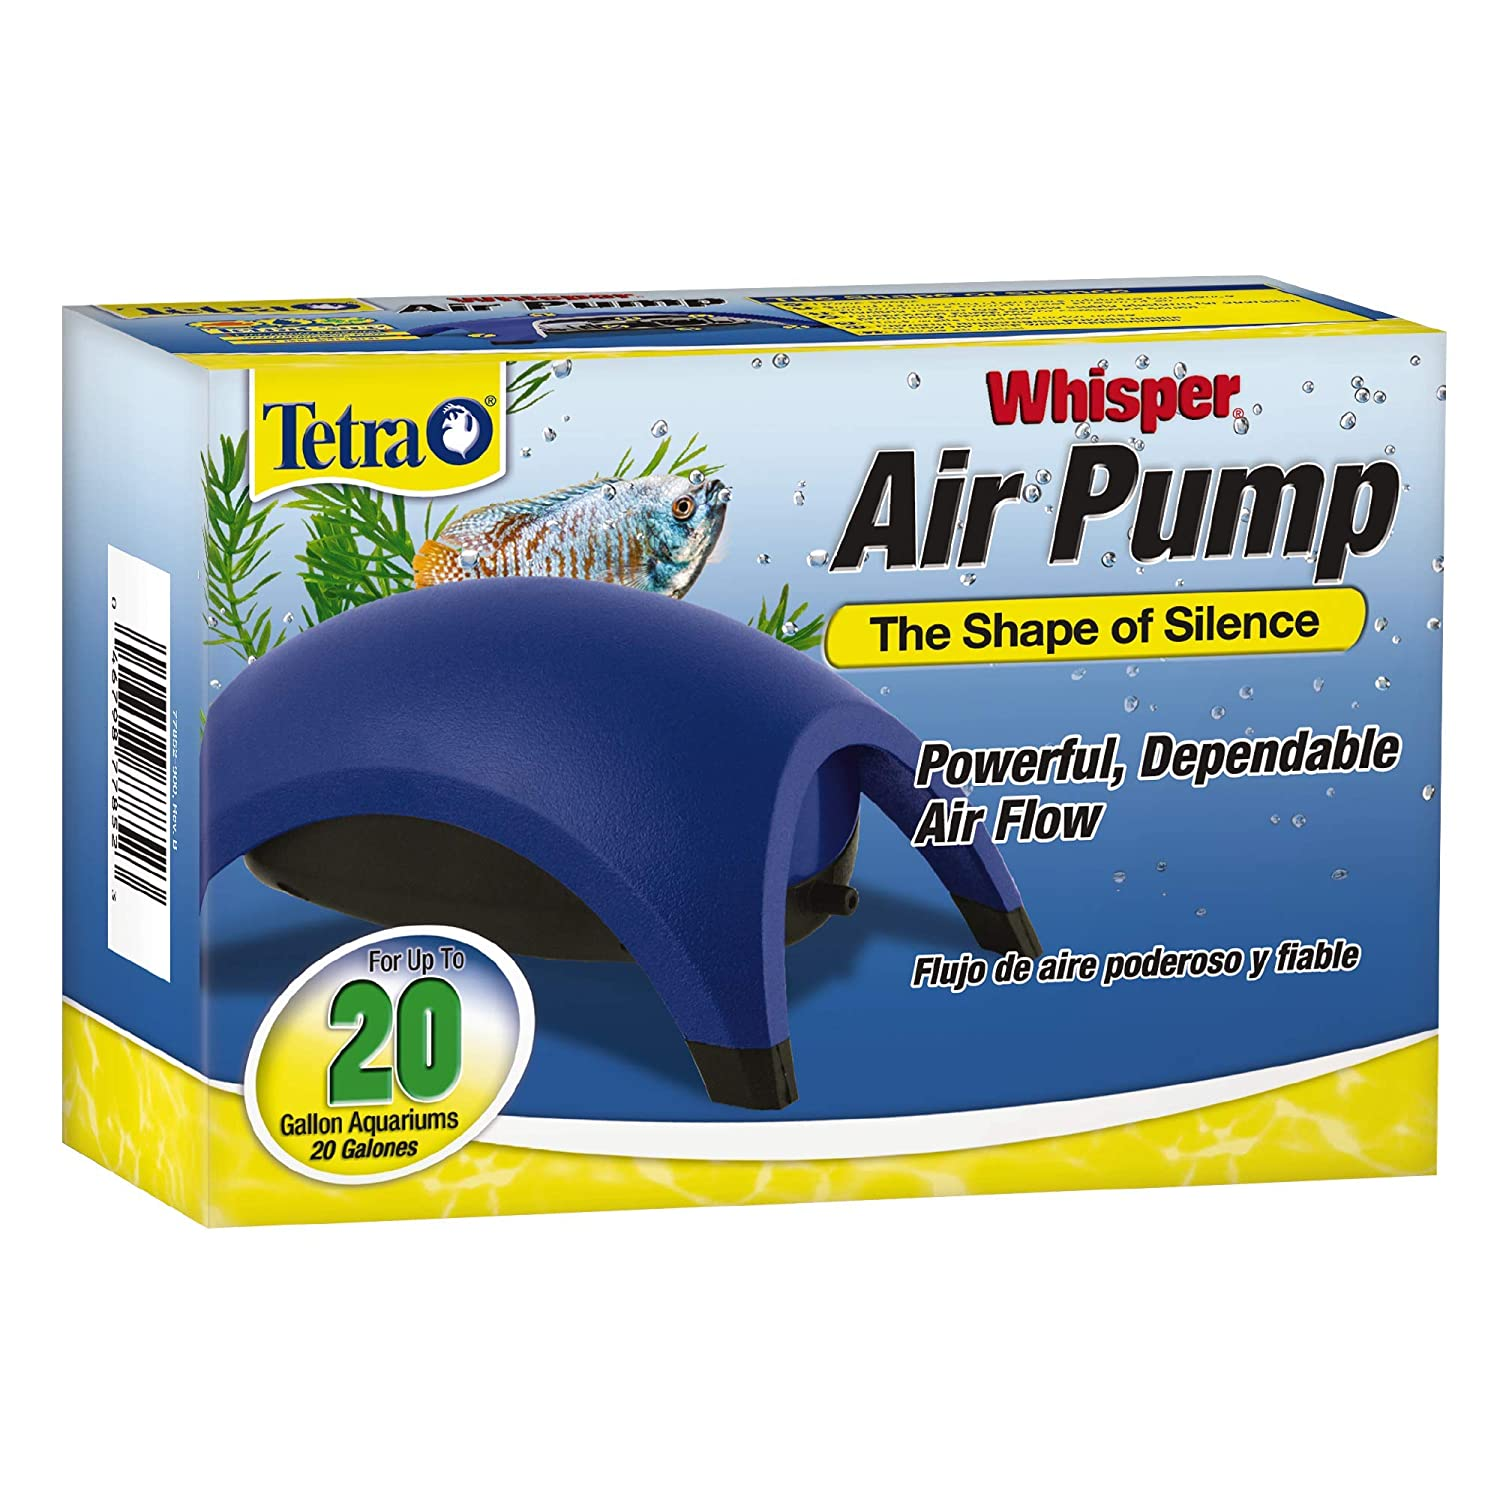 (10 to 75.7ls) Tetra Whisper Air Pump with Minimal Noise and Maximum Air Flow